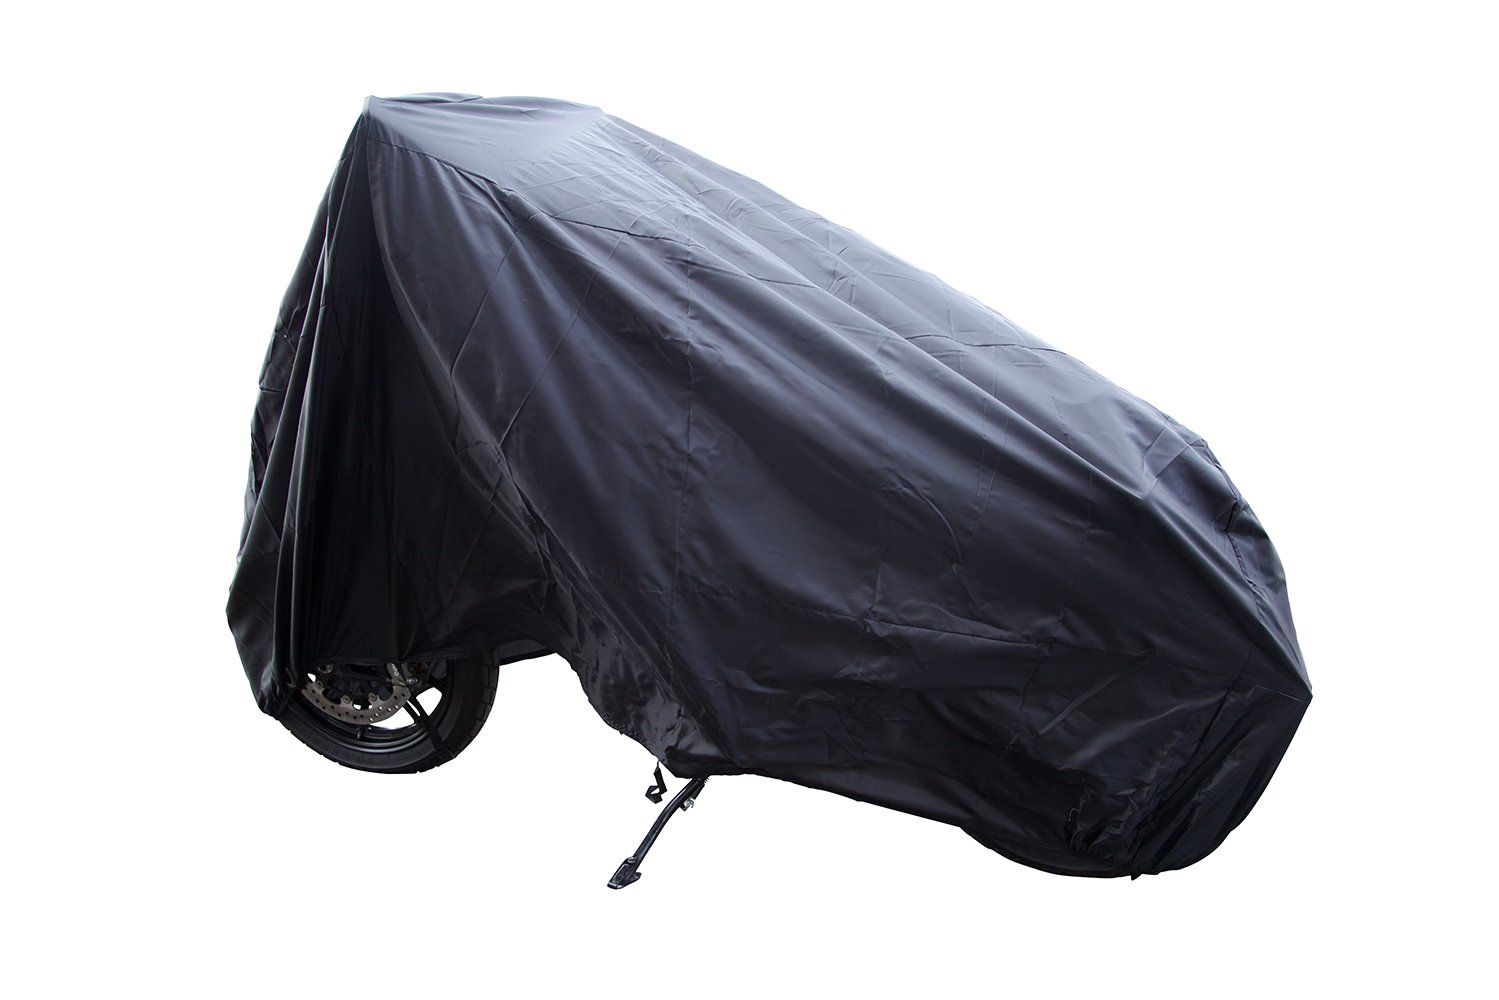 Auto Companion Motorbike Cover 190T Nylon Waterproof Motorcycle Cover - Anti Dust, Rain, UV. Indoor Outdoor Protection with Lock-holes Extra Large 240cm AUTOC-07